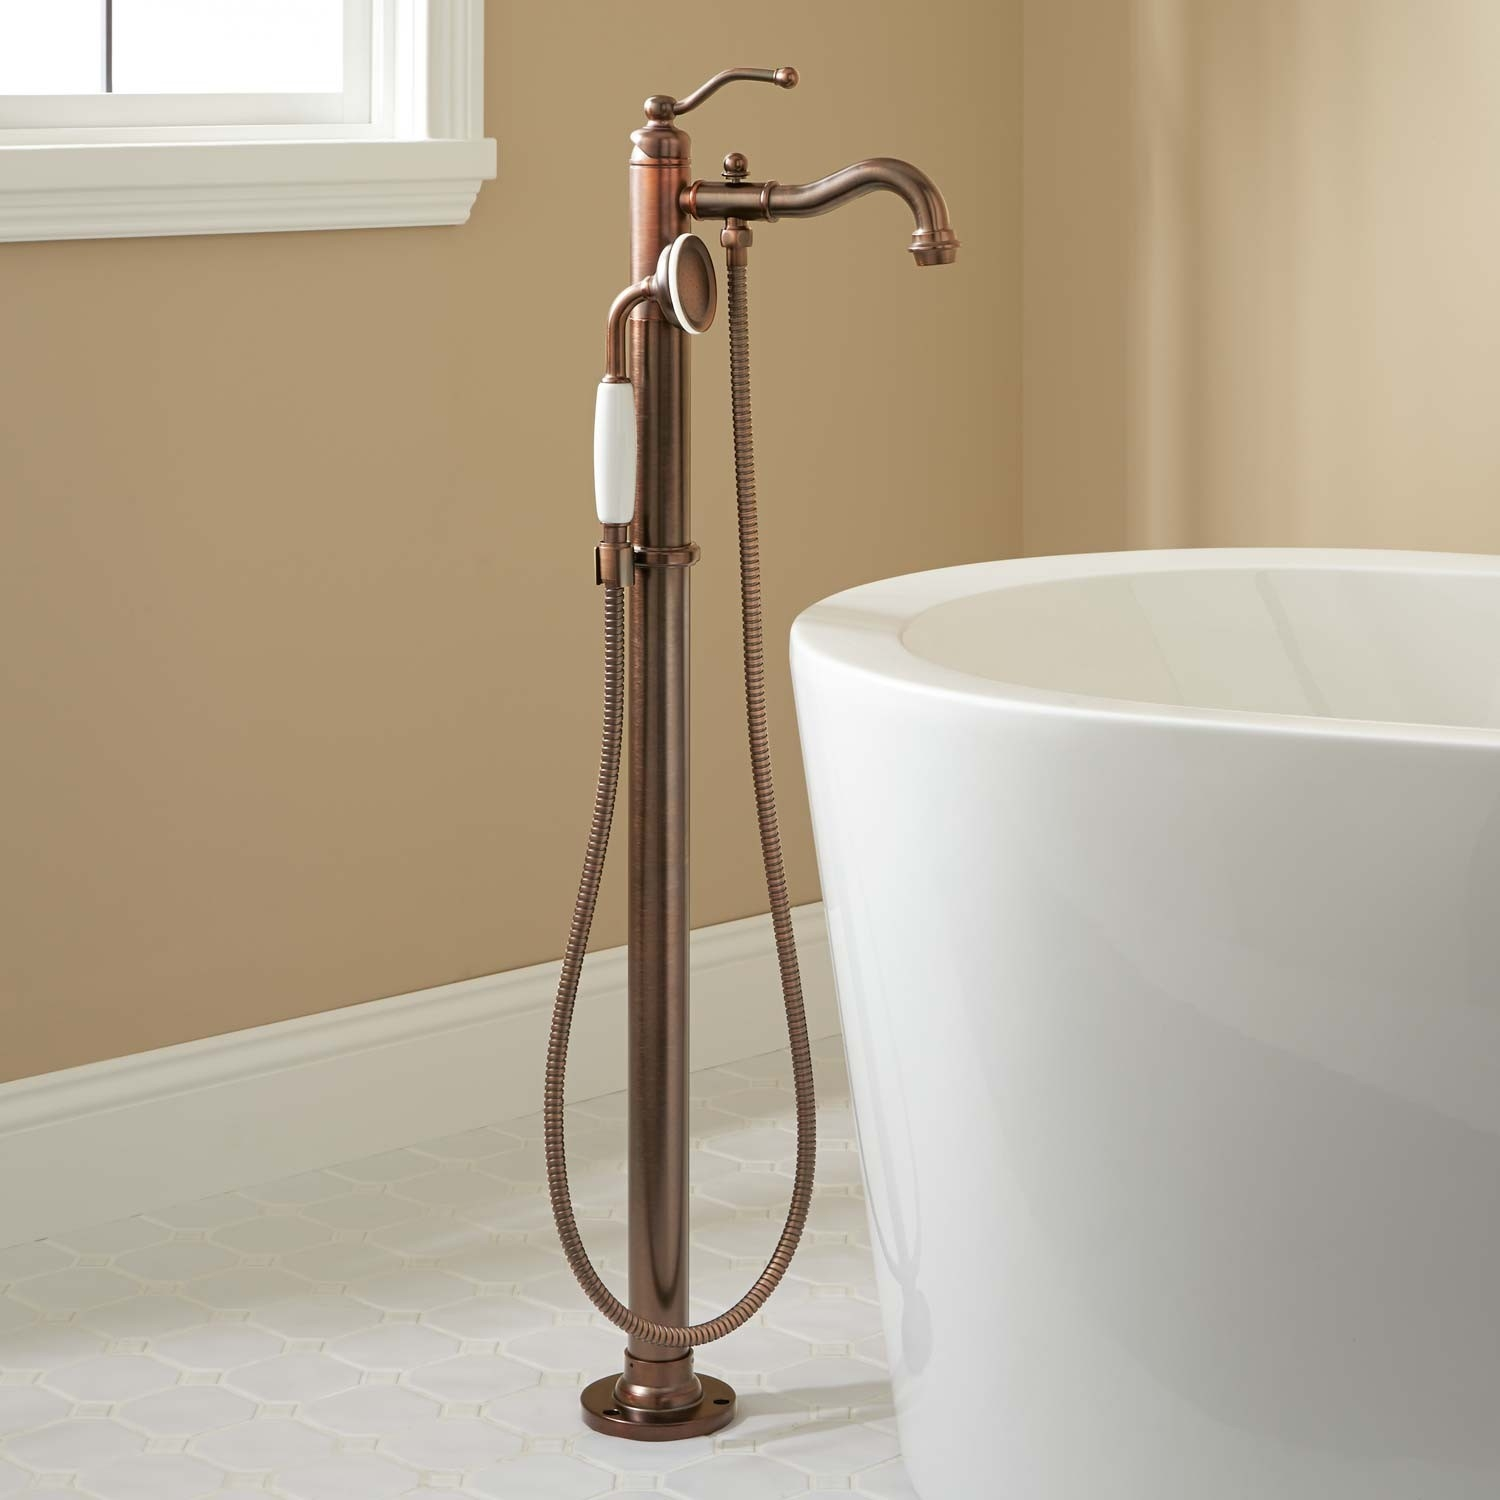 Ideas, stand alone bath faucet stand alone bath faucet leta freestanding tub faucet with hand shower bathroom 1500 x 1500  .